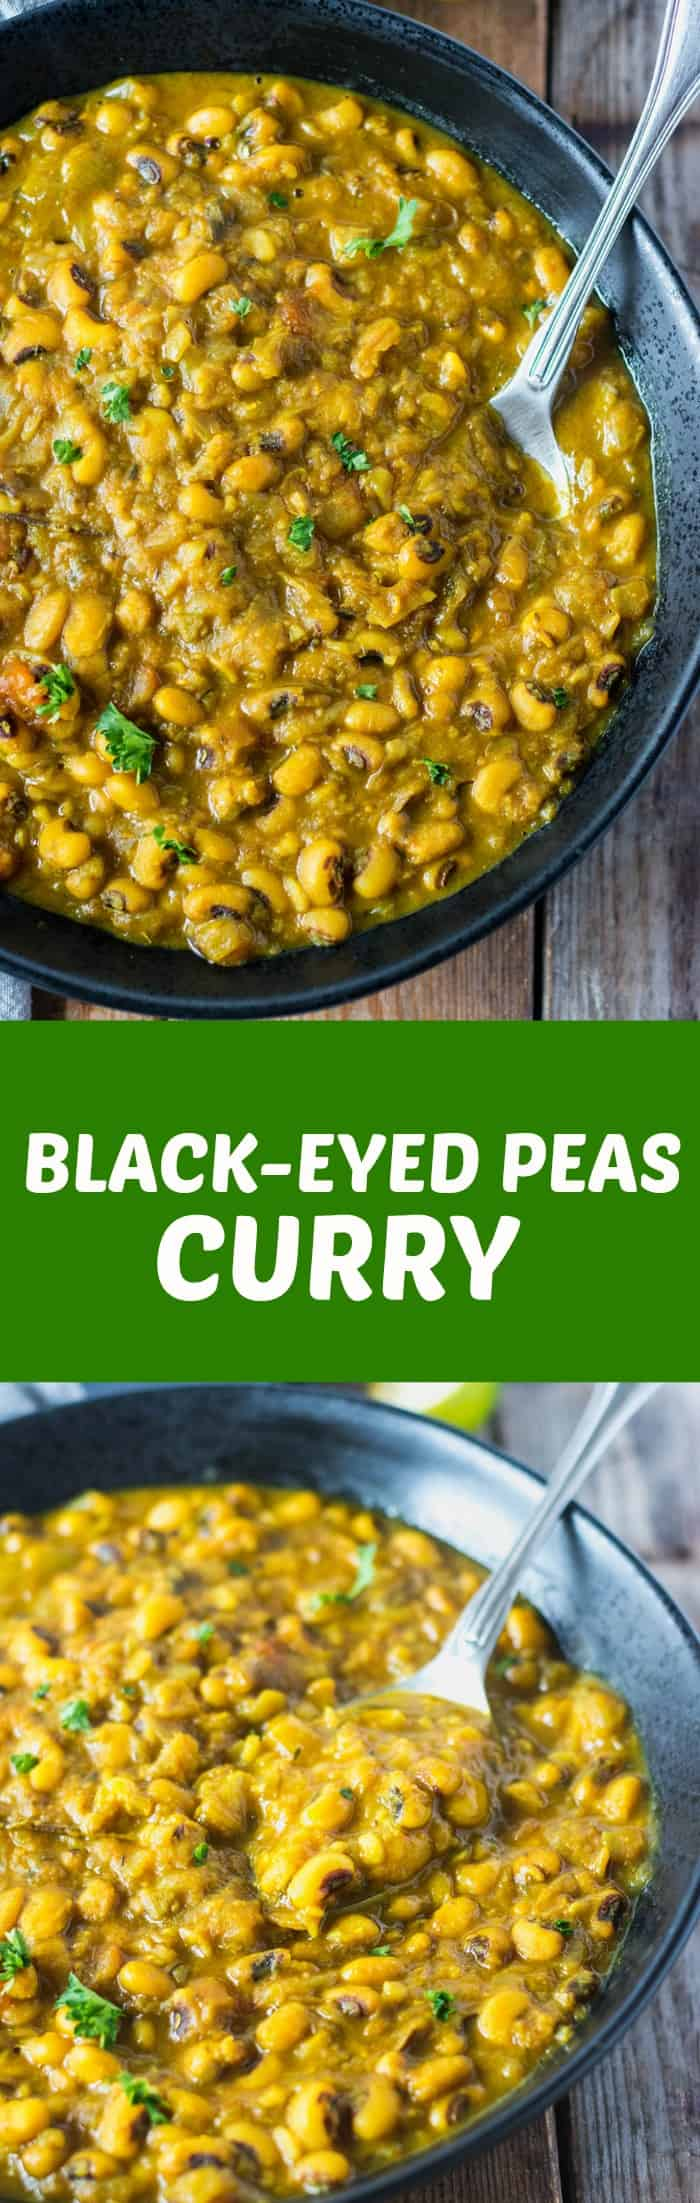 Indian Black-Eyed Peas Curry